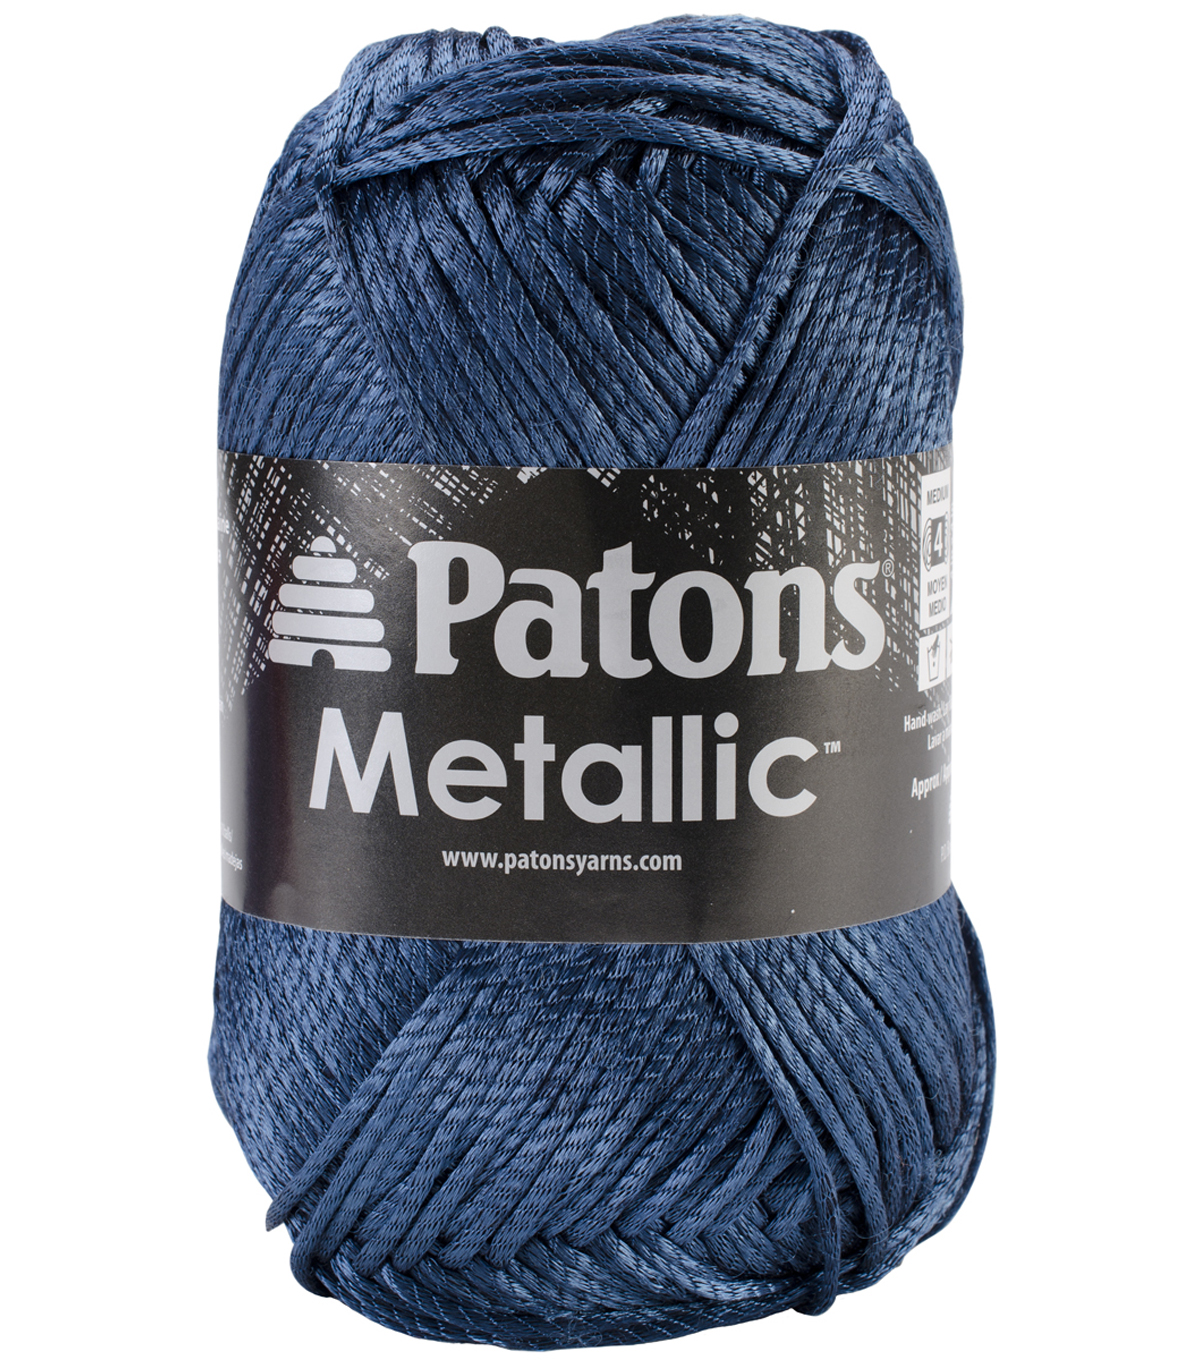 Patons Metallic Yarn